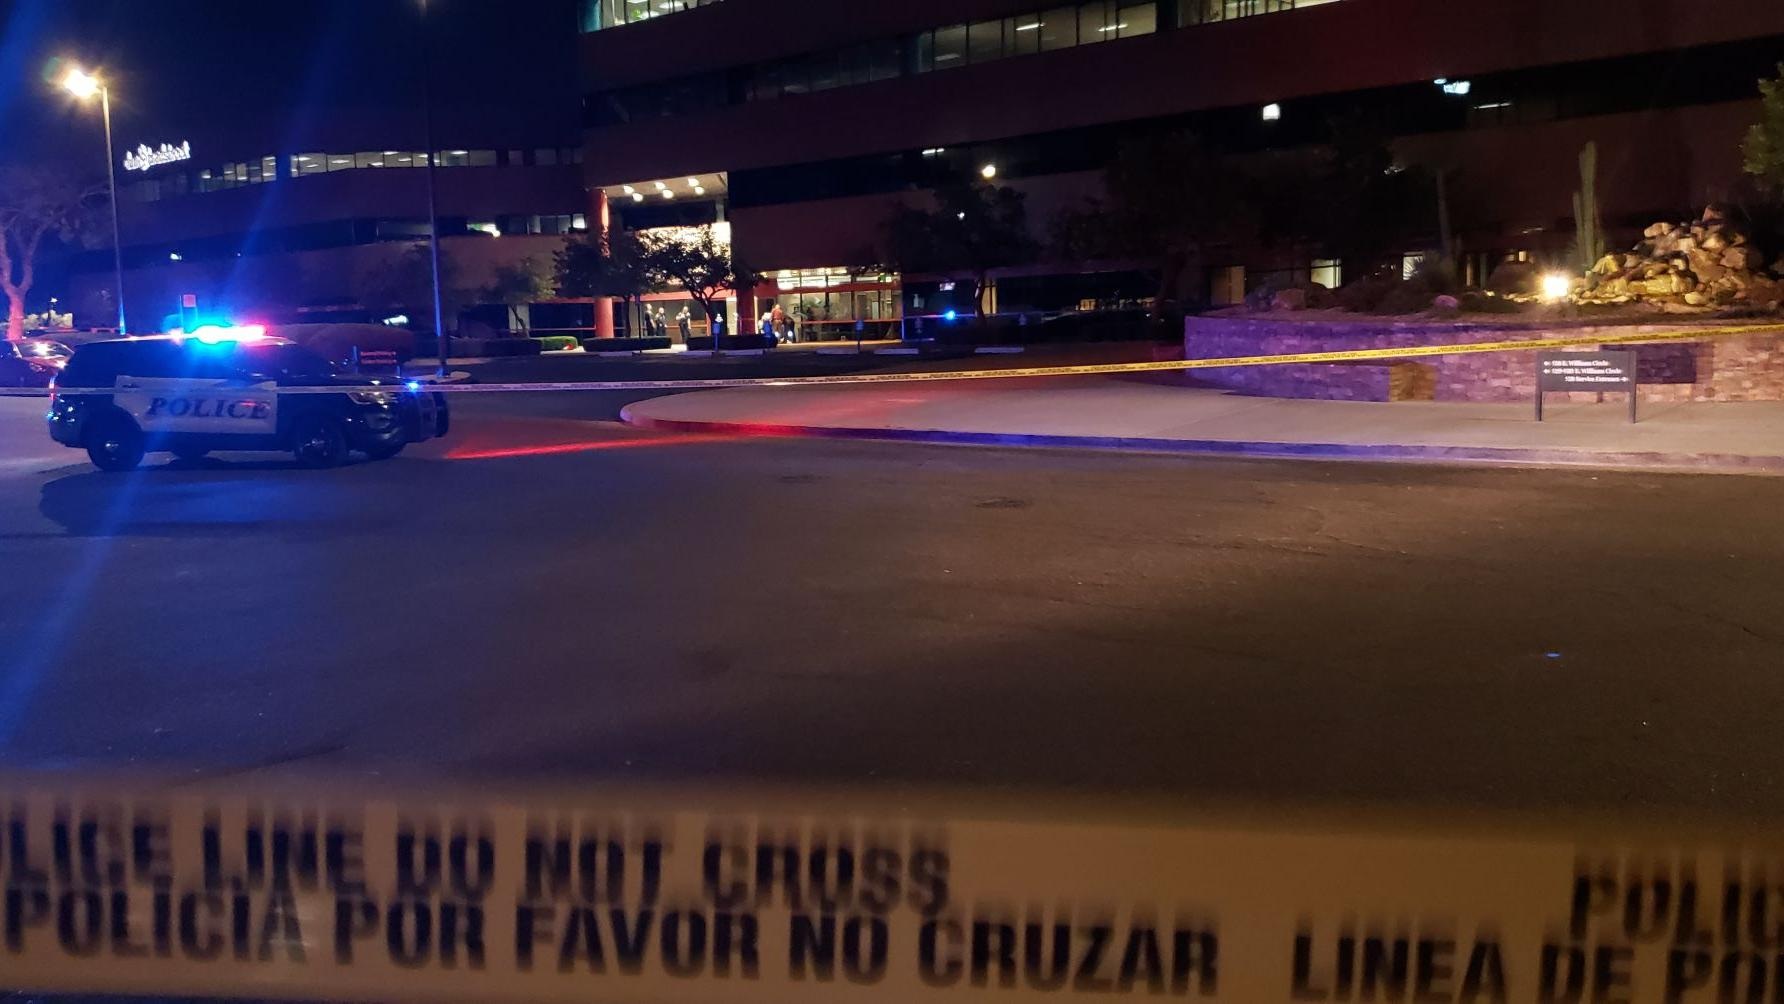 Tucson police ID man killed in gunfight with security guards